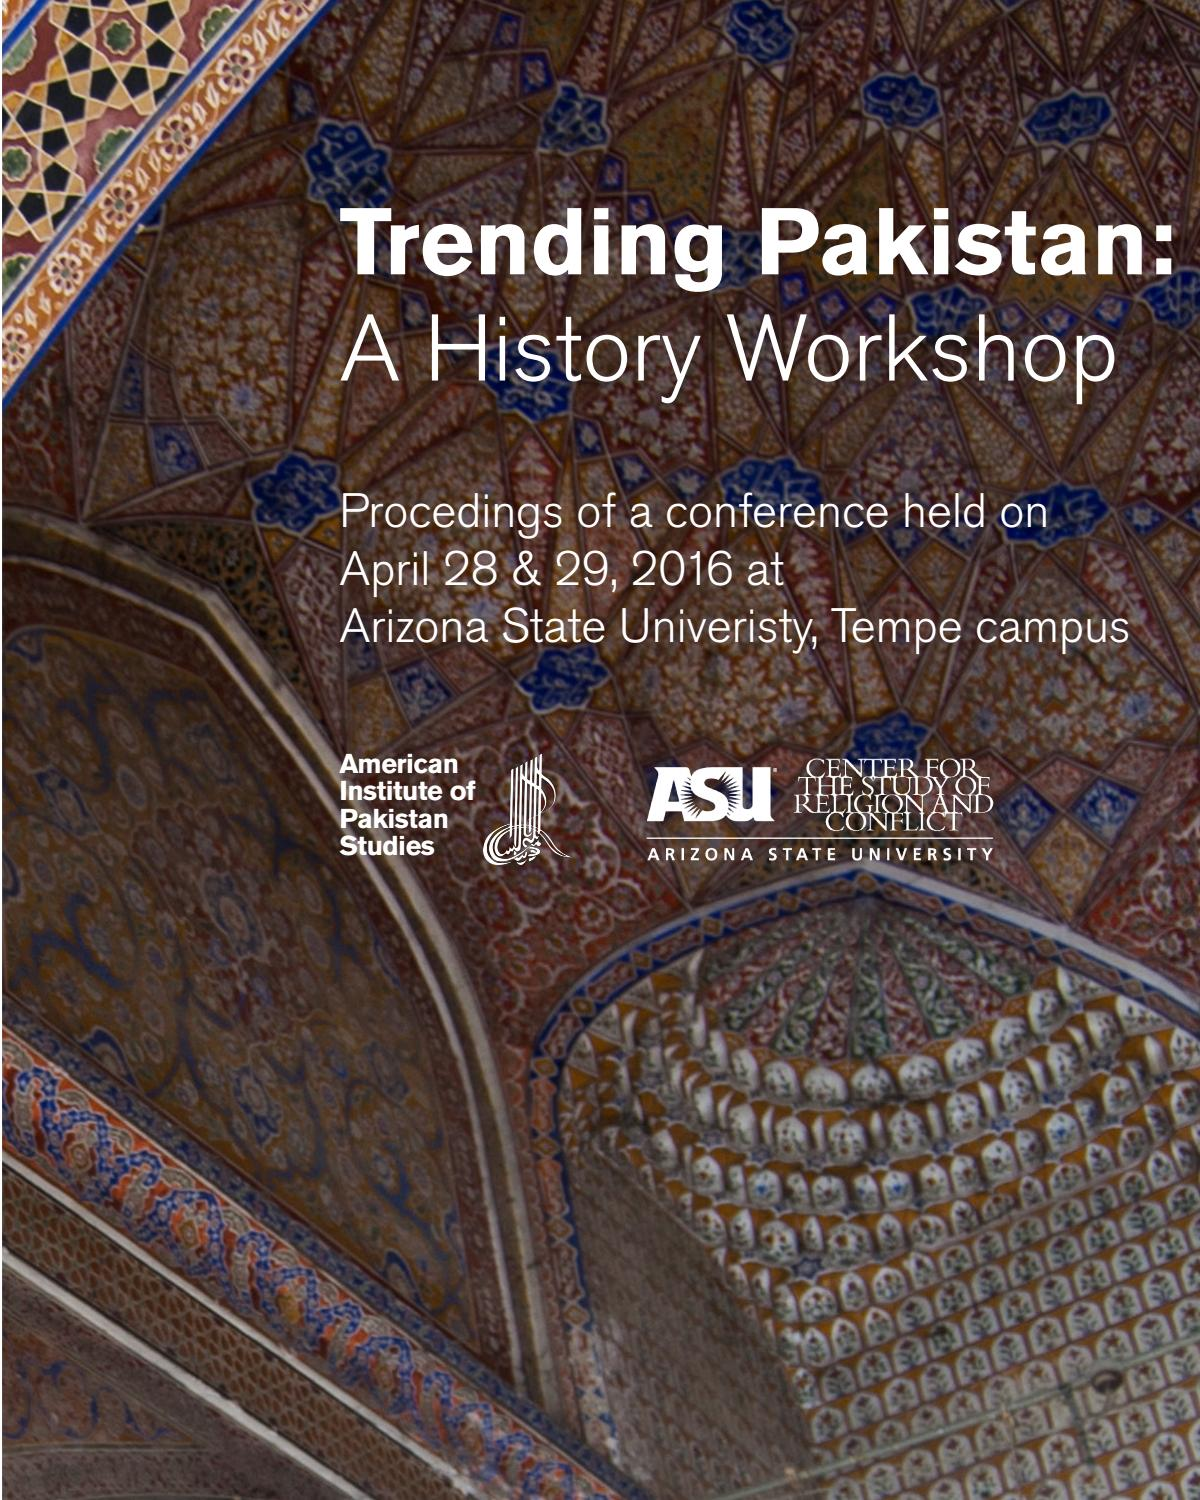 Trending Pakistan: A History Workshop by Center for the